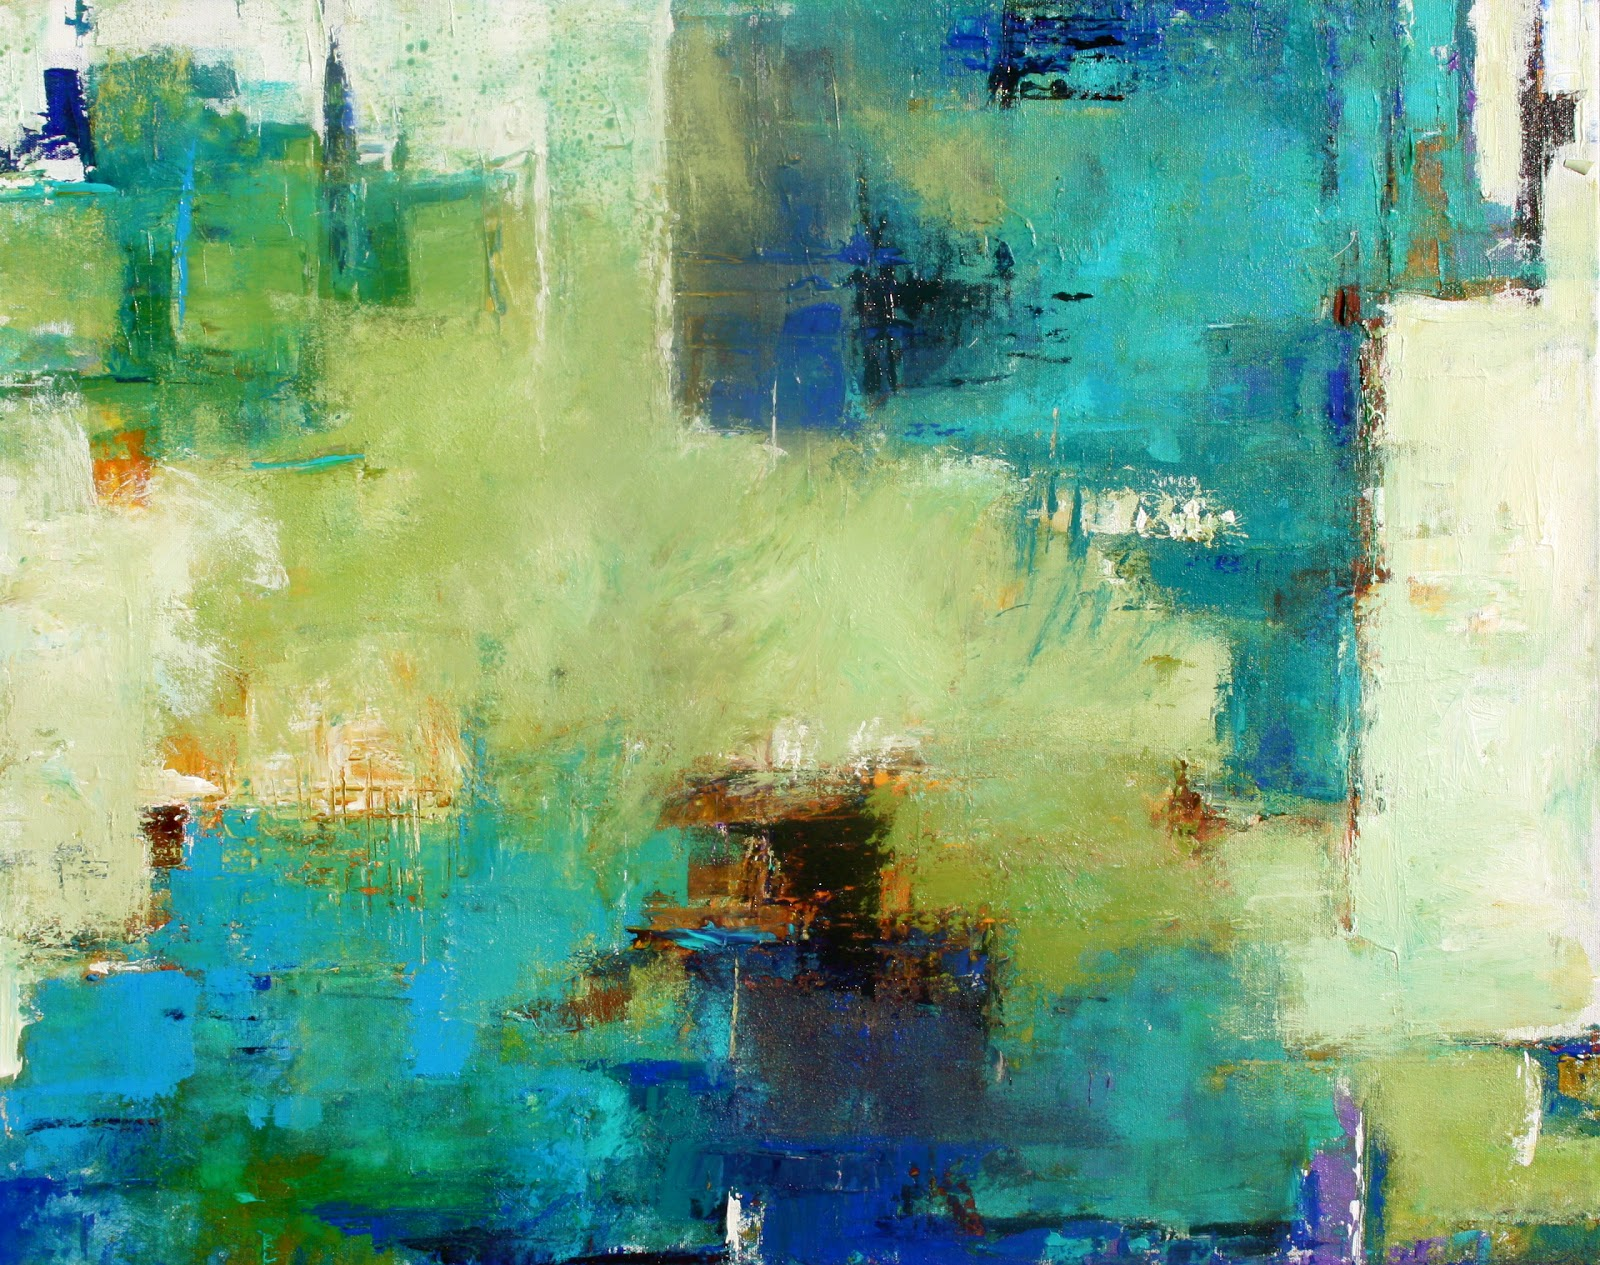 Elizabeth chapman february 2012 for Abstract mural paintings